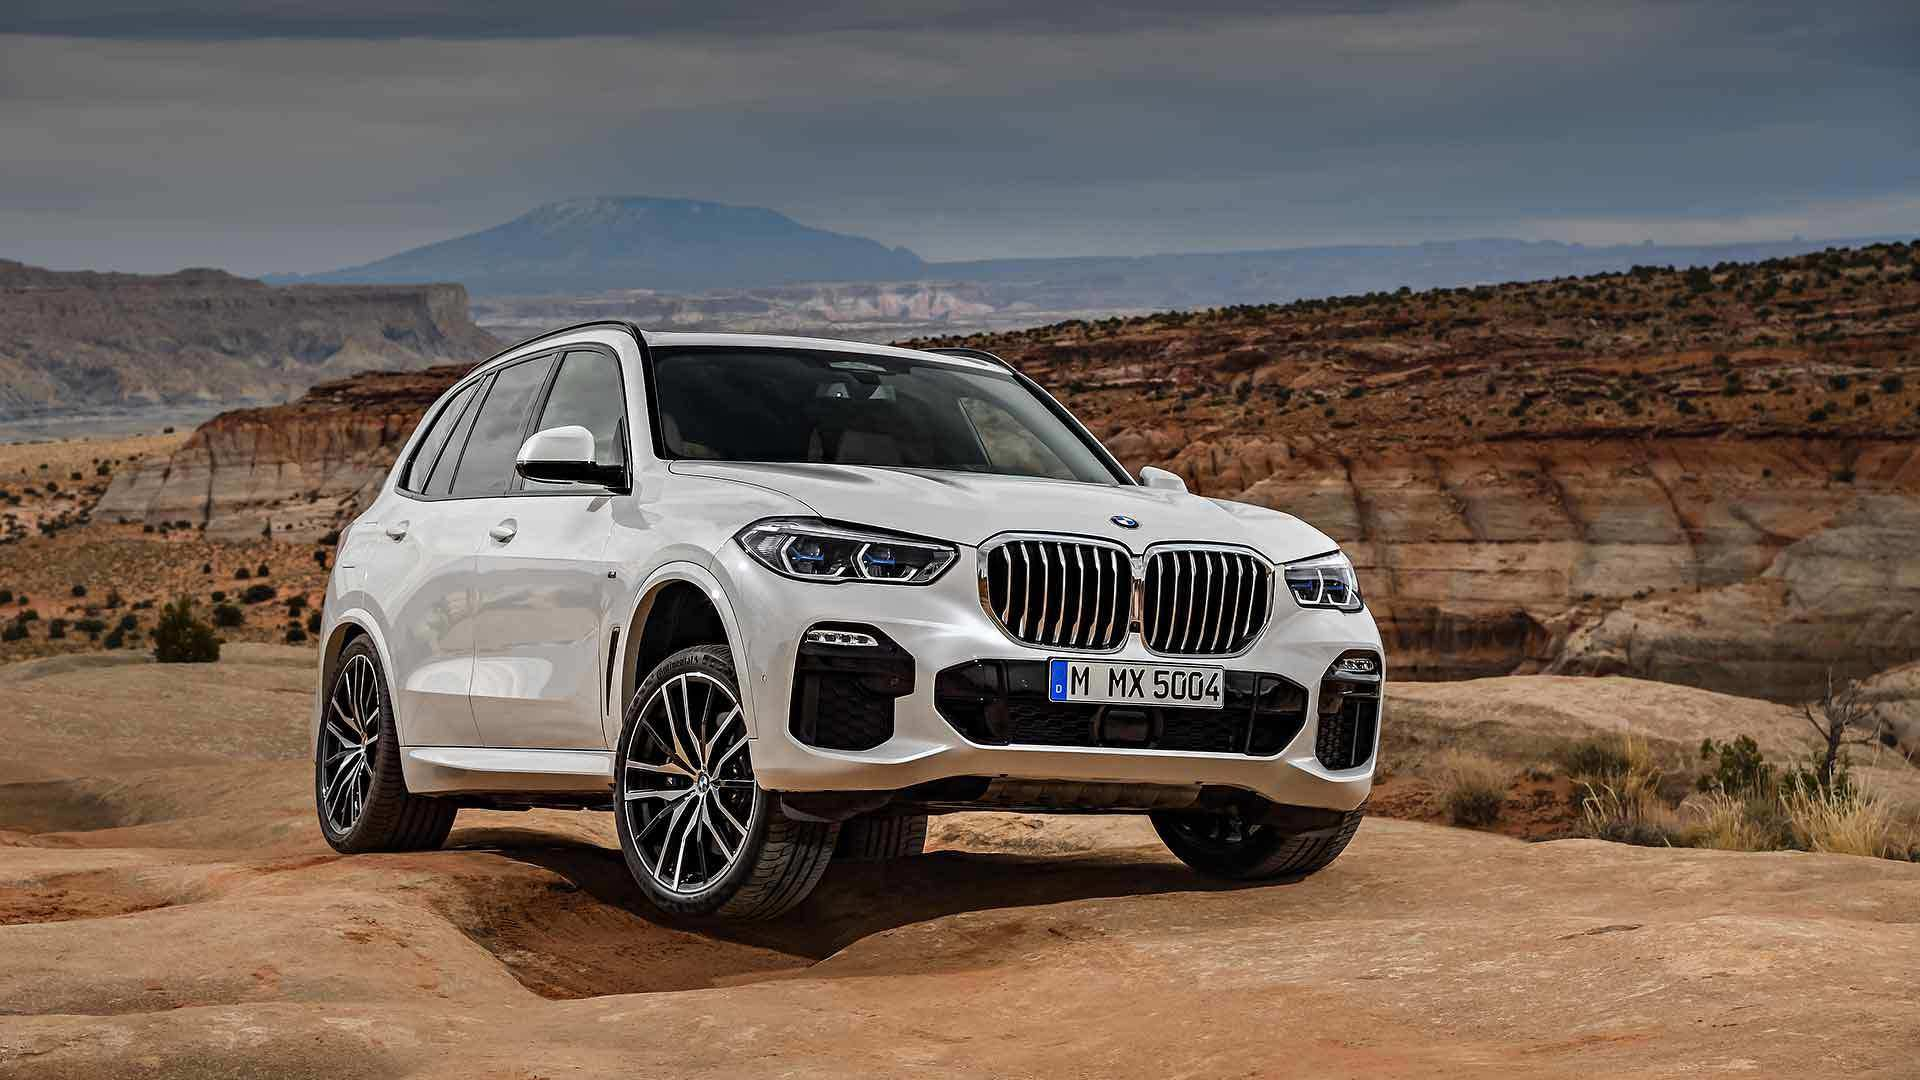 37 New The Bmw X5 2019 Launch Date Release Date Pictures for The Bmw X5 2019 Launch Date Release Date